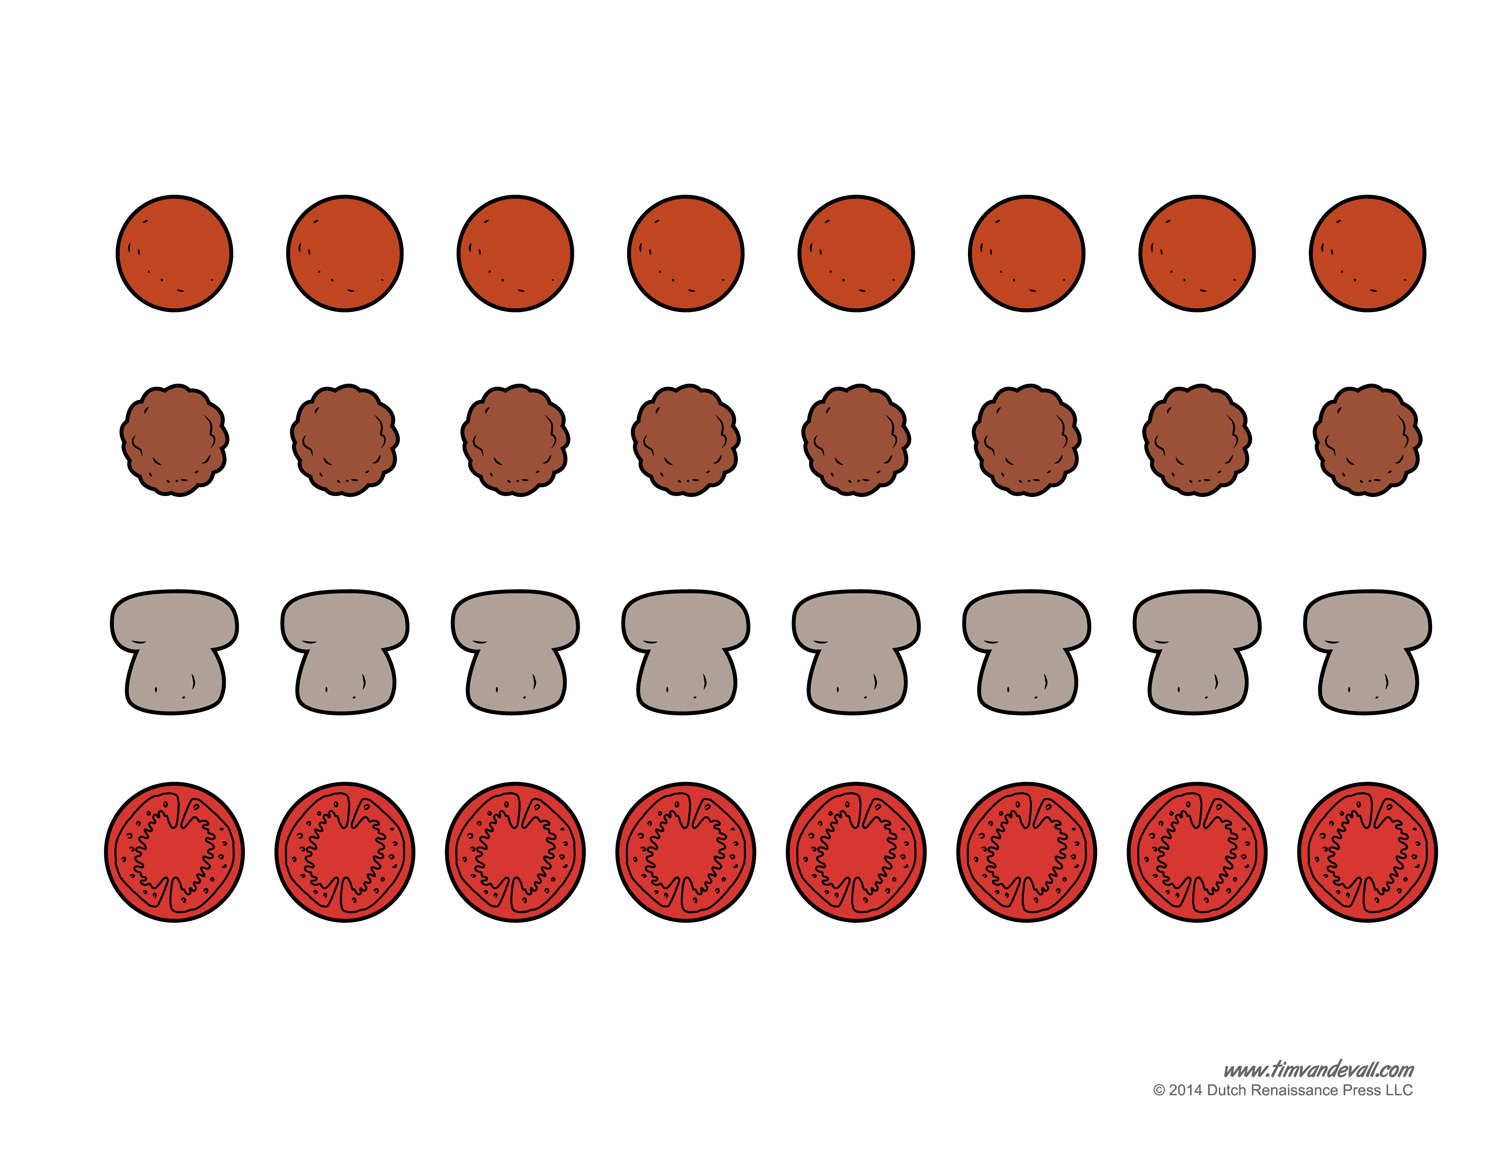 Mushroom clipart topping Blank Craft pizza Kids template